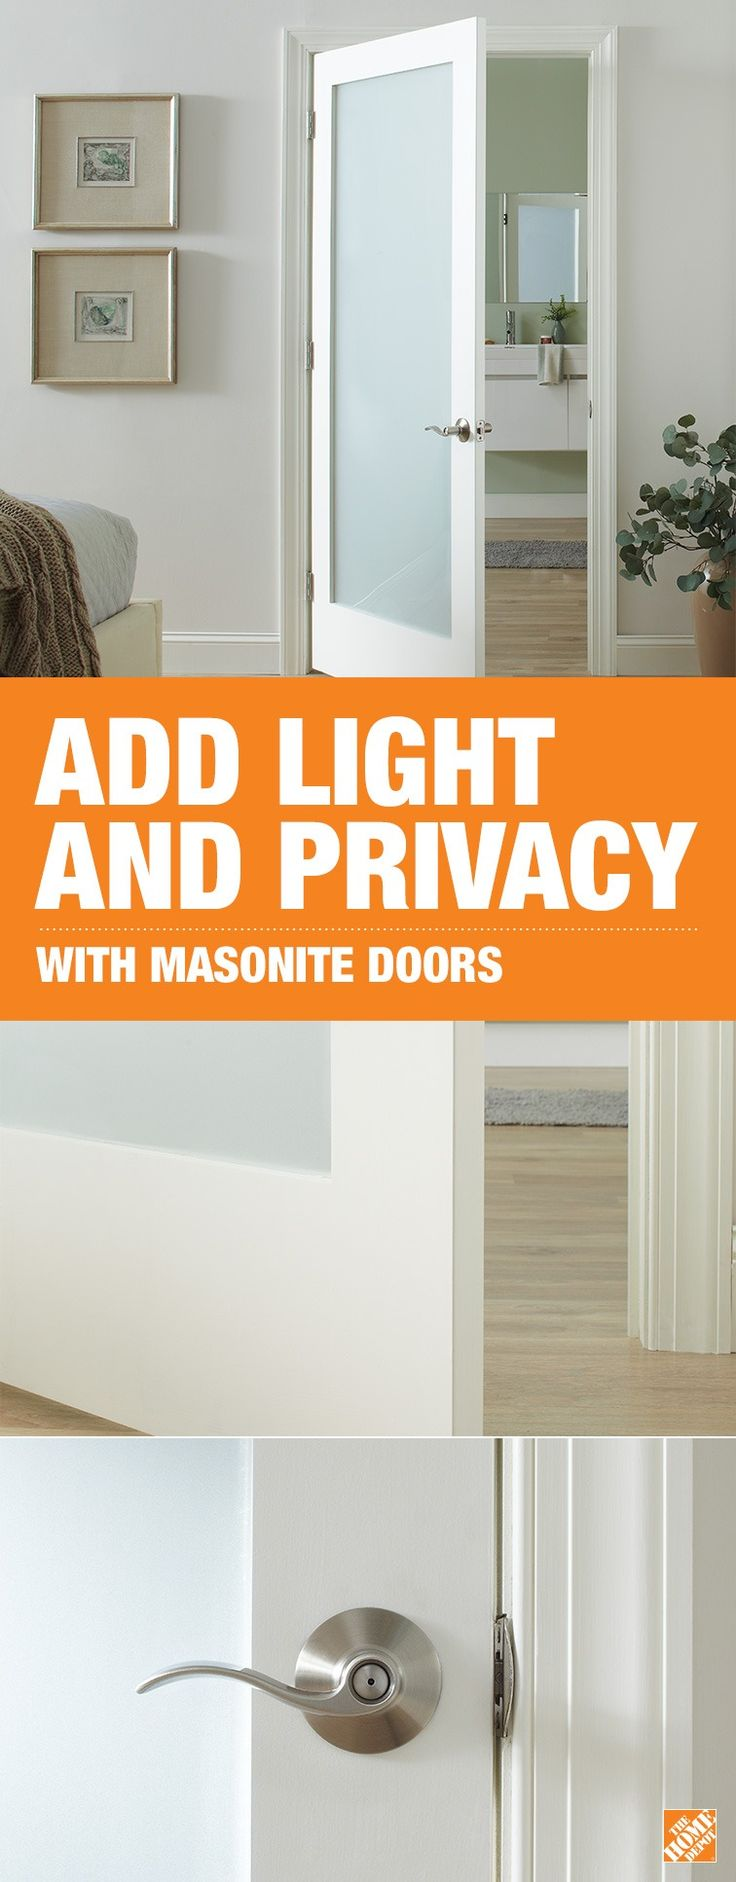 Easily Update Any Room With Masonite's Privacy Door Opaque Glass Allows  Light In While Maintaining